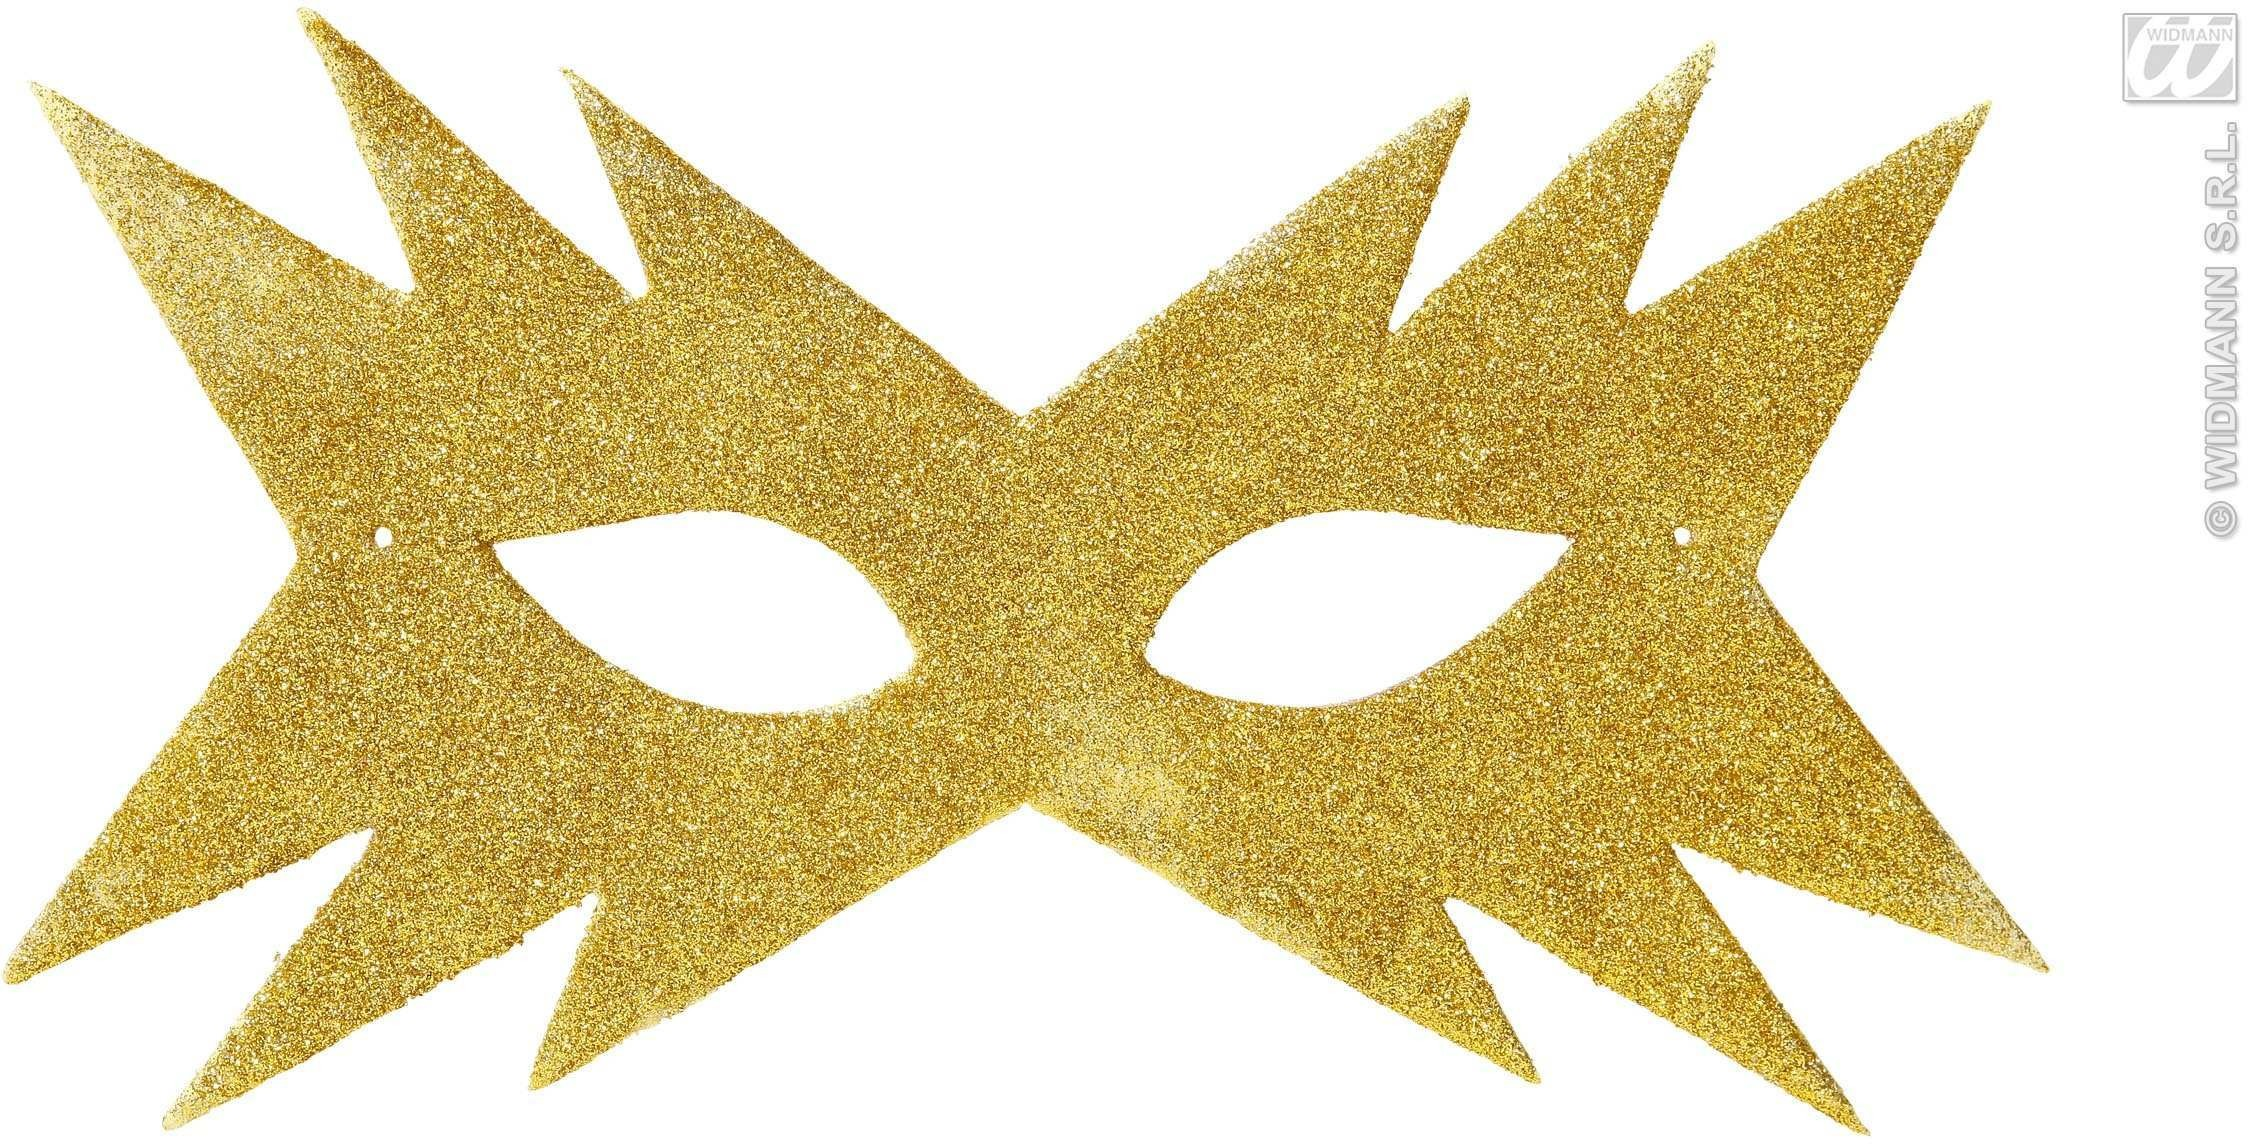 Star Eyemask - Gold - Fancy Dress